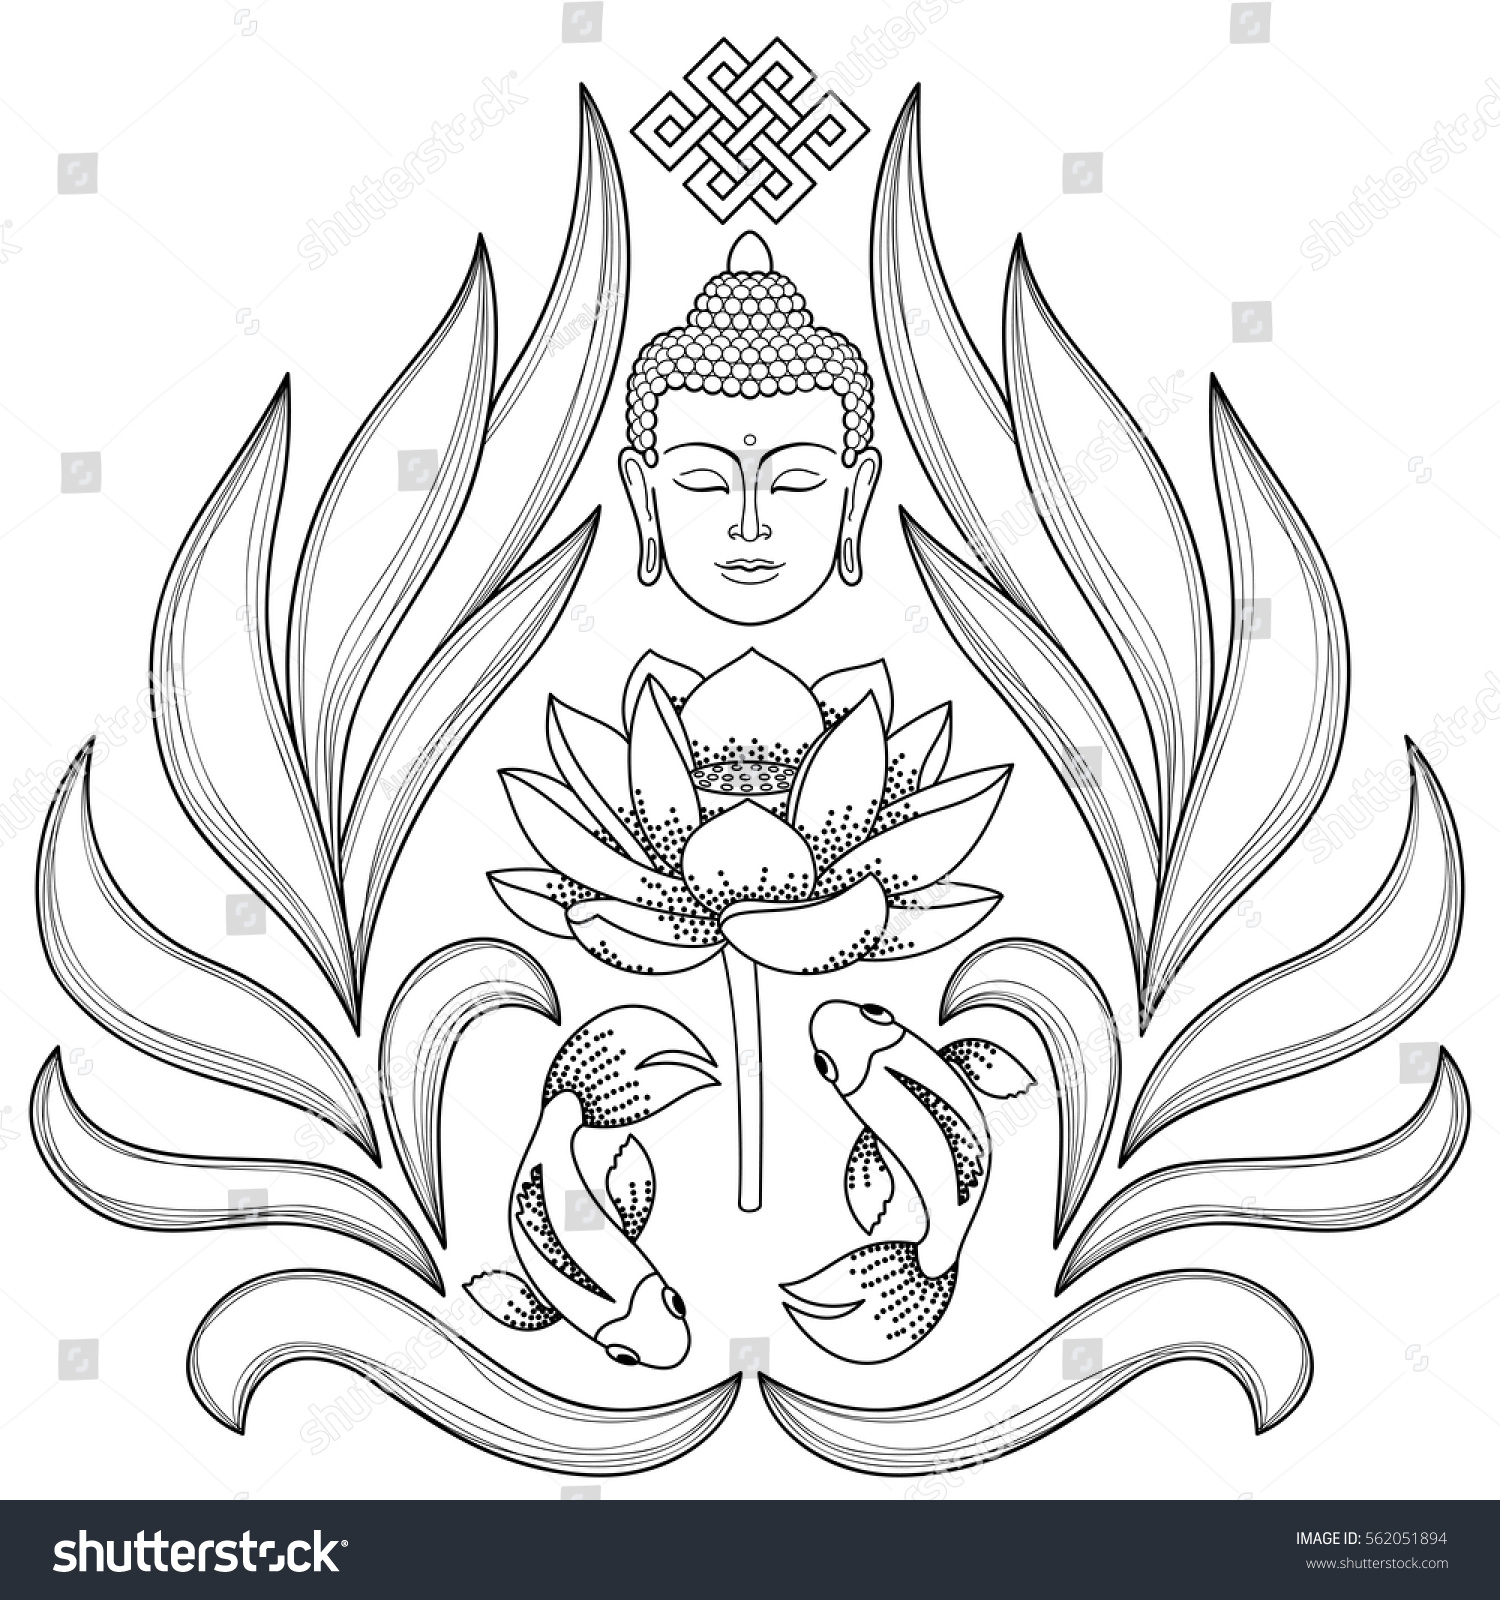 Buddha head endless knot lotus fishes stock vector 562051894 buddha head with endless knot lotus fishes on white background tattoo with buddhism biocorpaavc Images